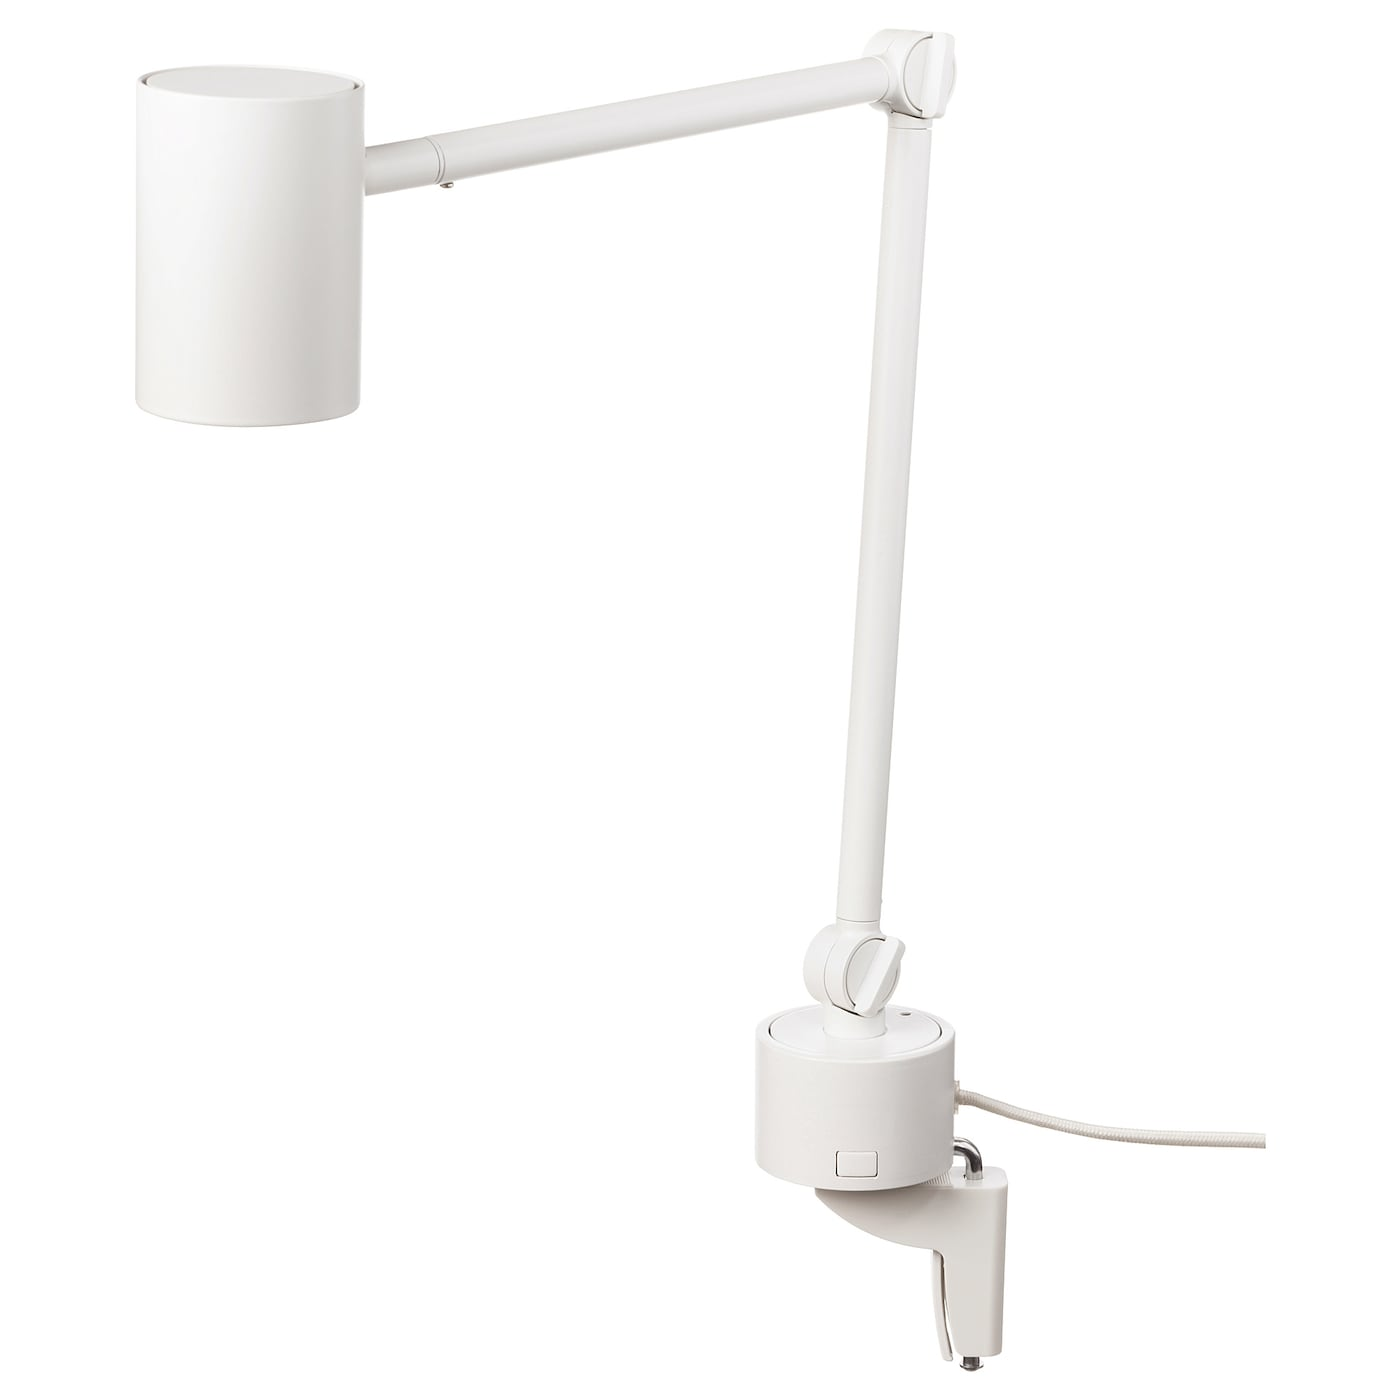 IKEA NYMÅNE work/wall lamp Provides a directed light that is great for reading.